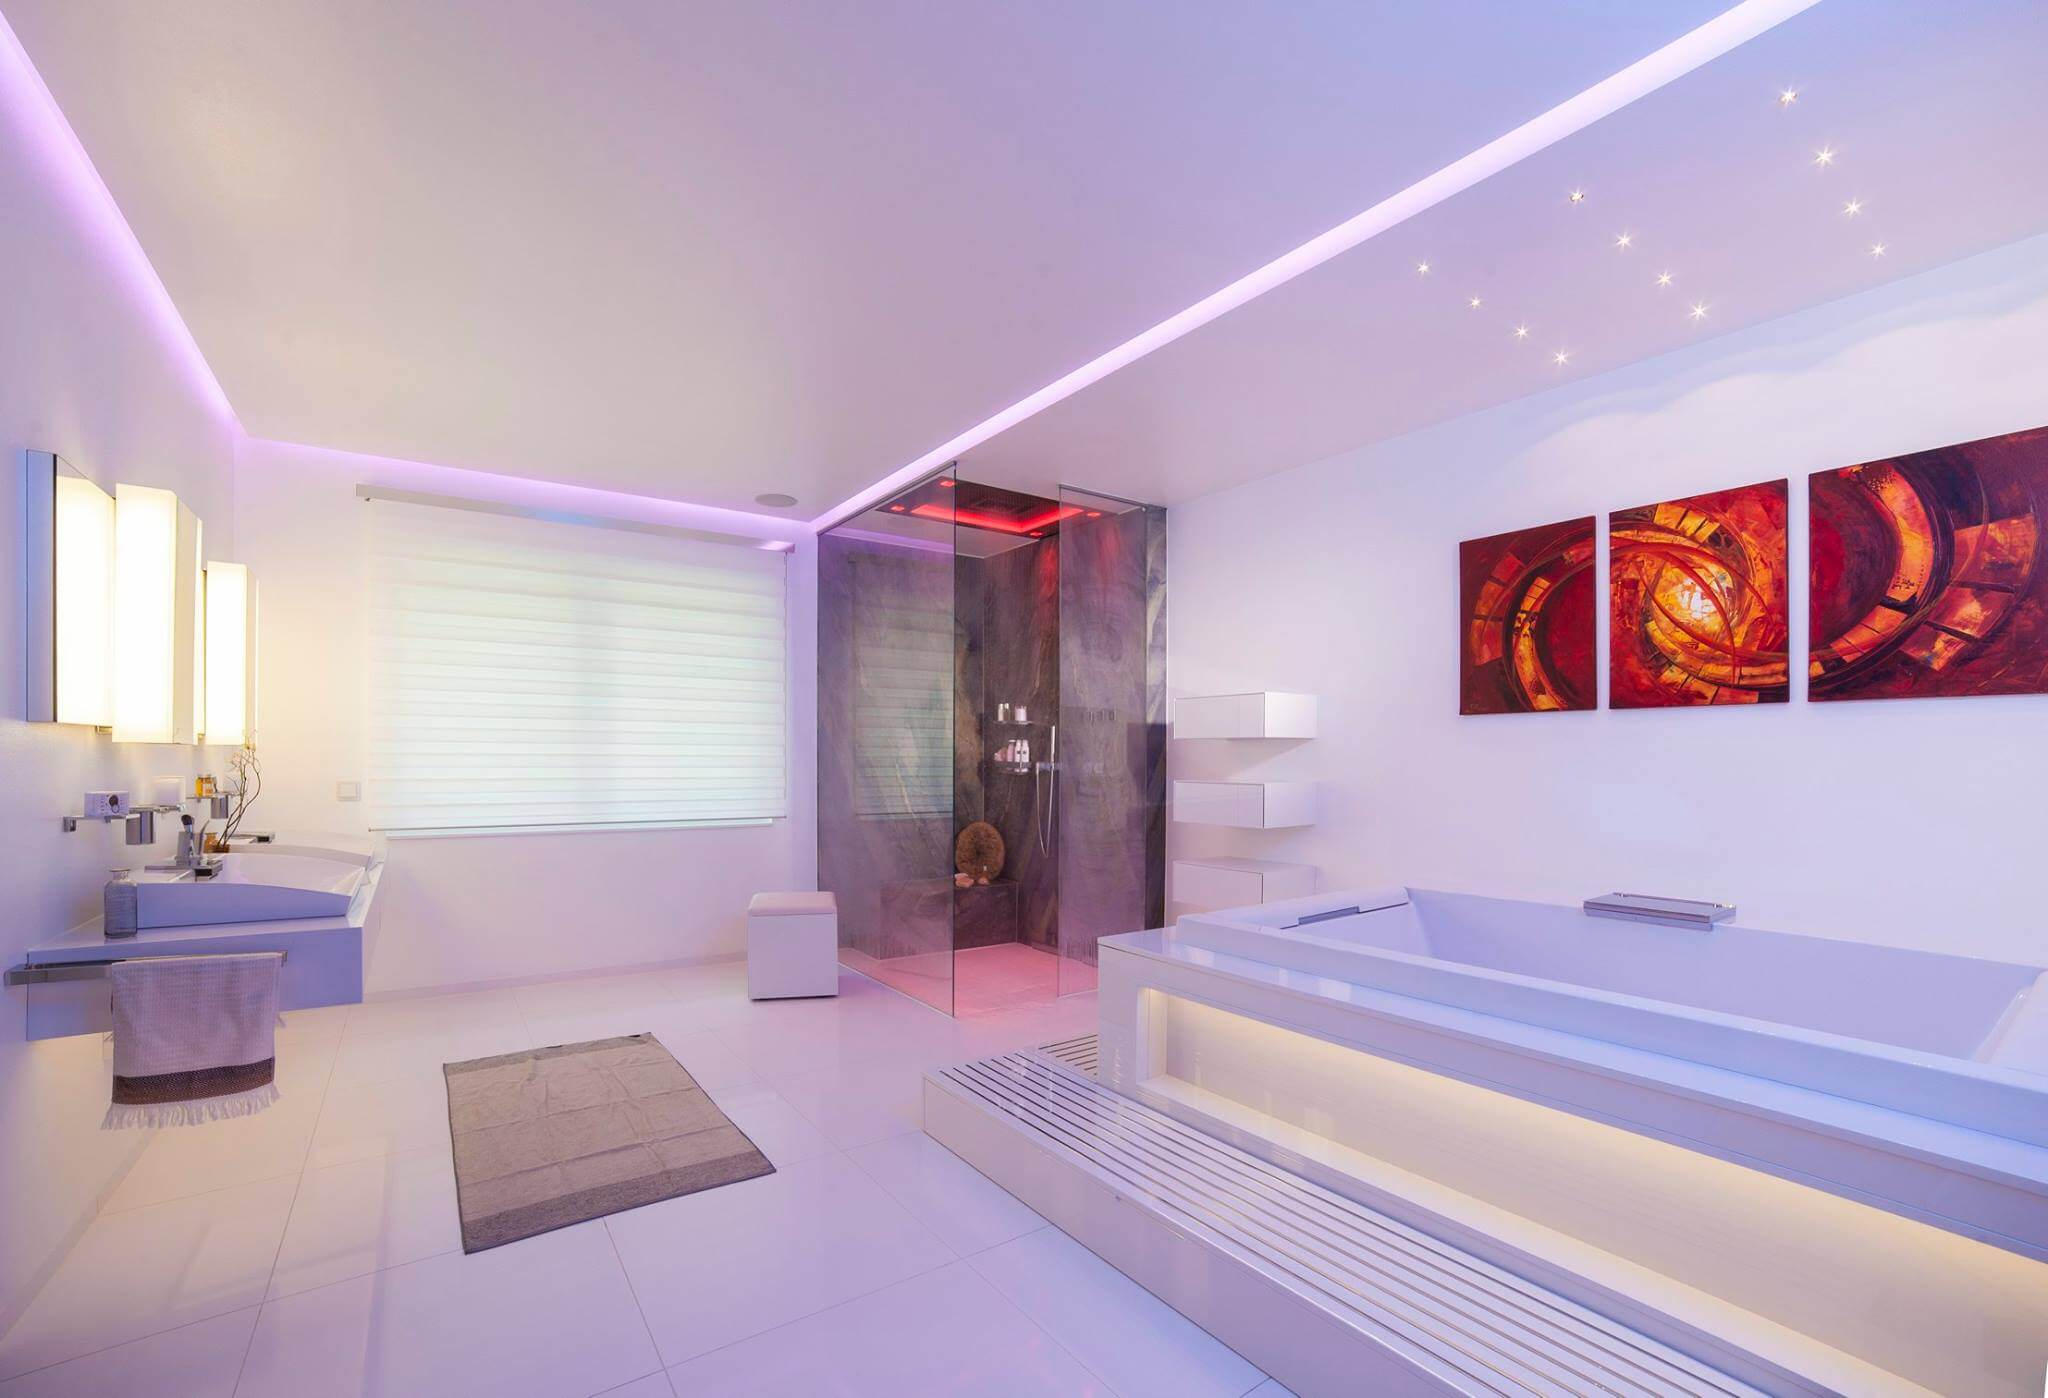 Haus zum Traeumen Design by Torsten Mueller aus Bad Honnef naehe Koeln Bonn Duesseldorf Inspiration Lichtdesign Spa Badezimmer Badarchitektur Luxusbad Traumbad exklusives Baddesign